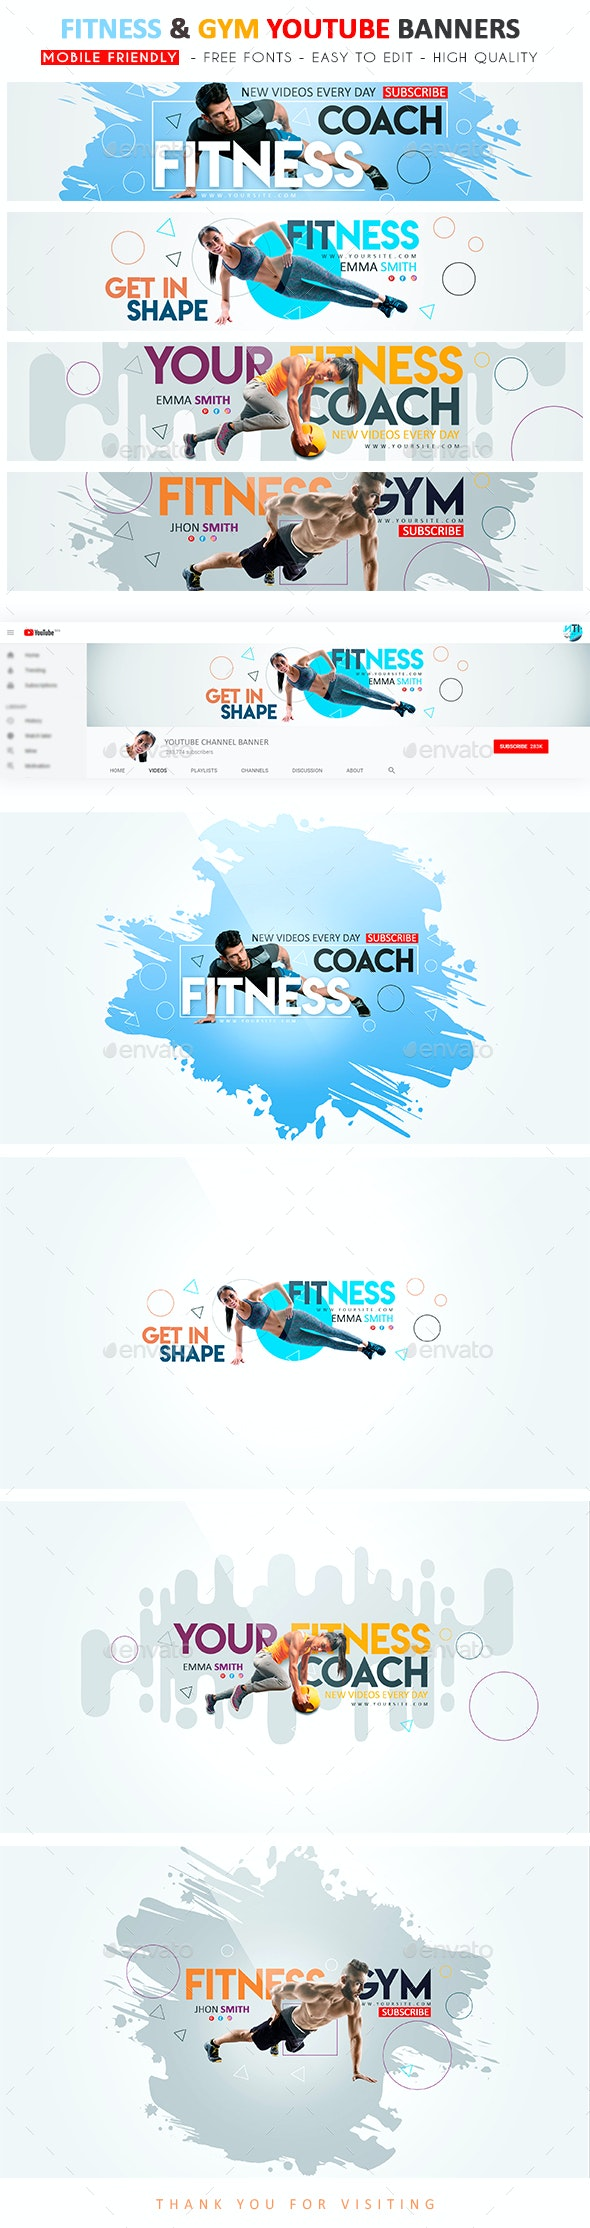 Fitness & Gym YouTube Banner - YouTube Social Media